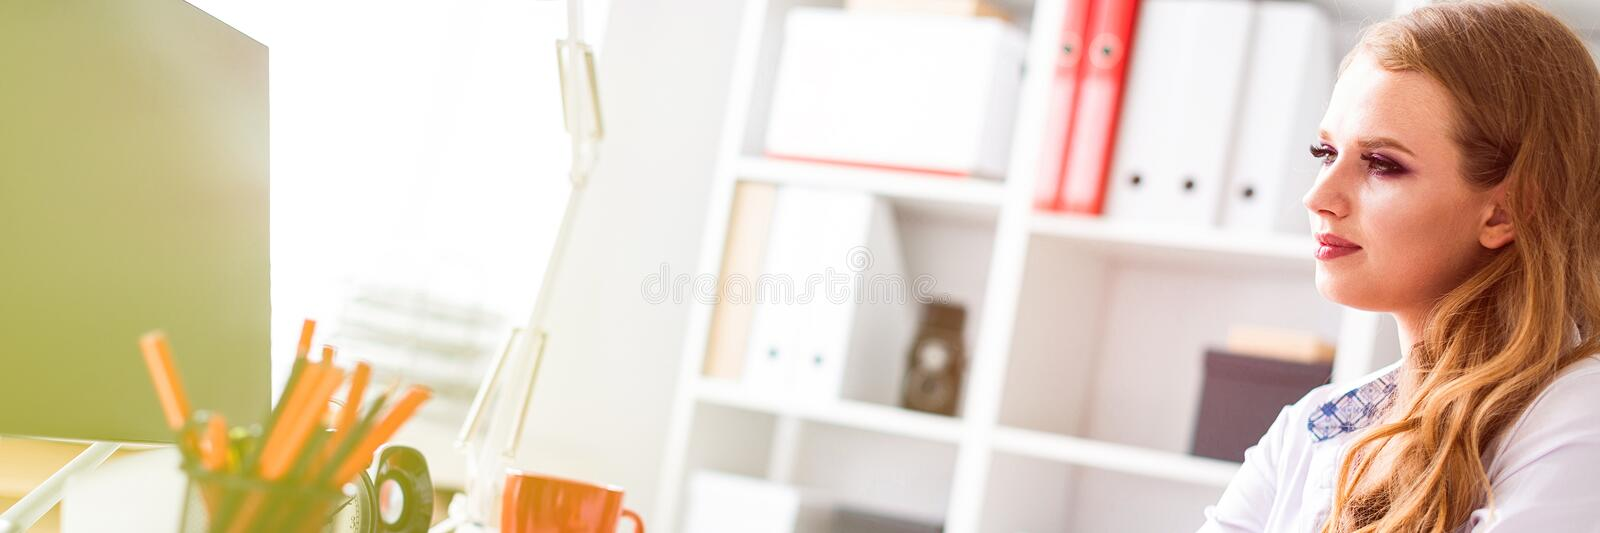 Beautiful young girl sitting at desk in office and working at computer. Before the girl there are documents. stock photos